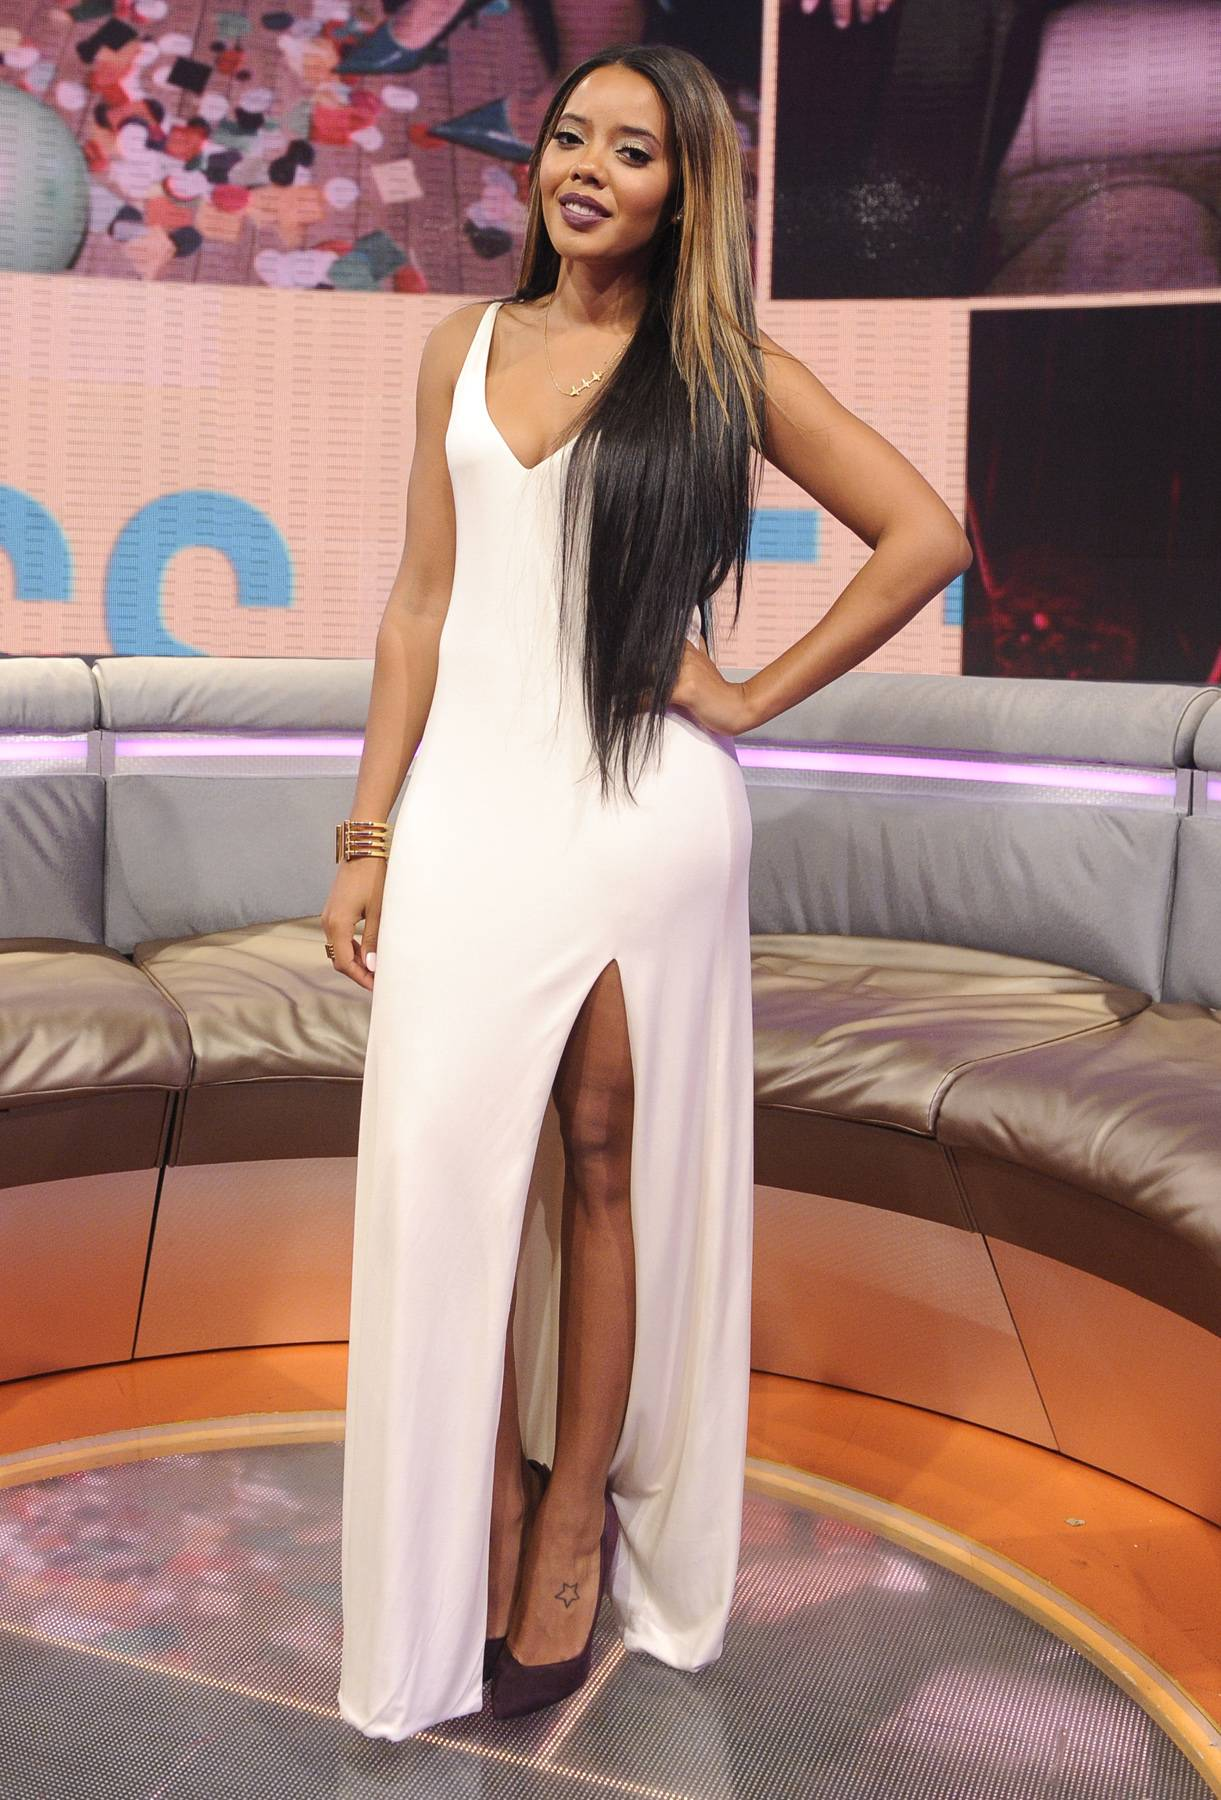 Angela Simmons' Hottest 106 Moments - Angela Simmons is part of the 106 fam and no stranger to being both a guest and a co-host from time to time. With her sense of humor and fashion sense always on point, she continues to set a great example for the Livest Audience.  Click on for Angela Simmons' Hottest 106 Moments and tune in tonight at 6P/5C for Angela co-hosting alongside of her old friend Bow Wow!  (photo: John Ricard / BET)